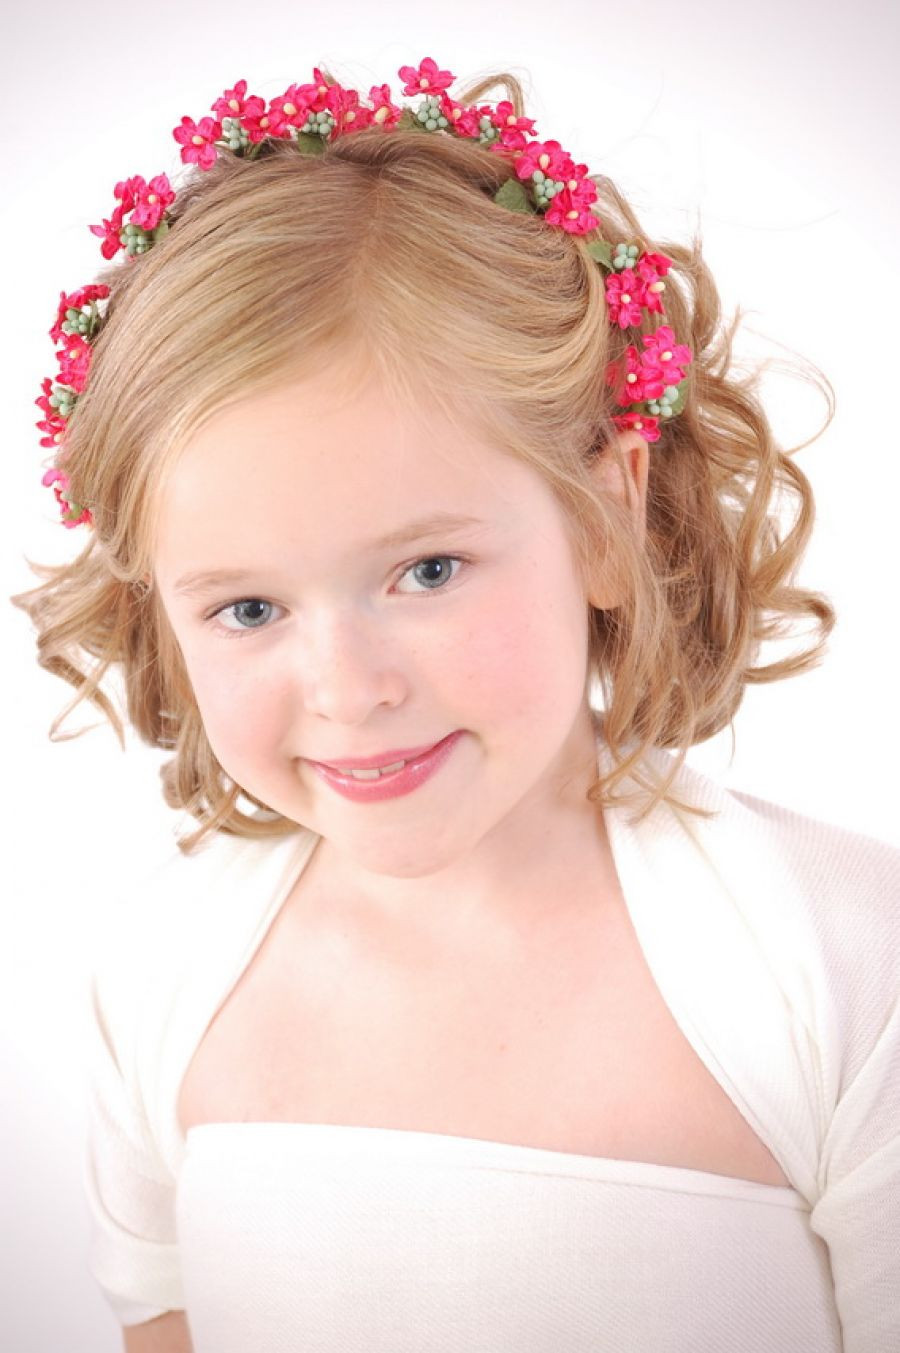 Best ideas about Haircuts For Kids Girls . Save or Pin 20 Hairstyles for Kids with MagMent Now.